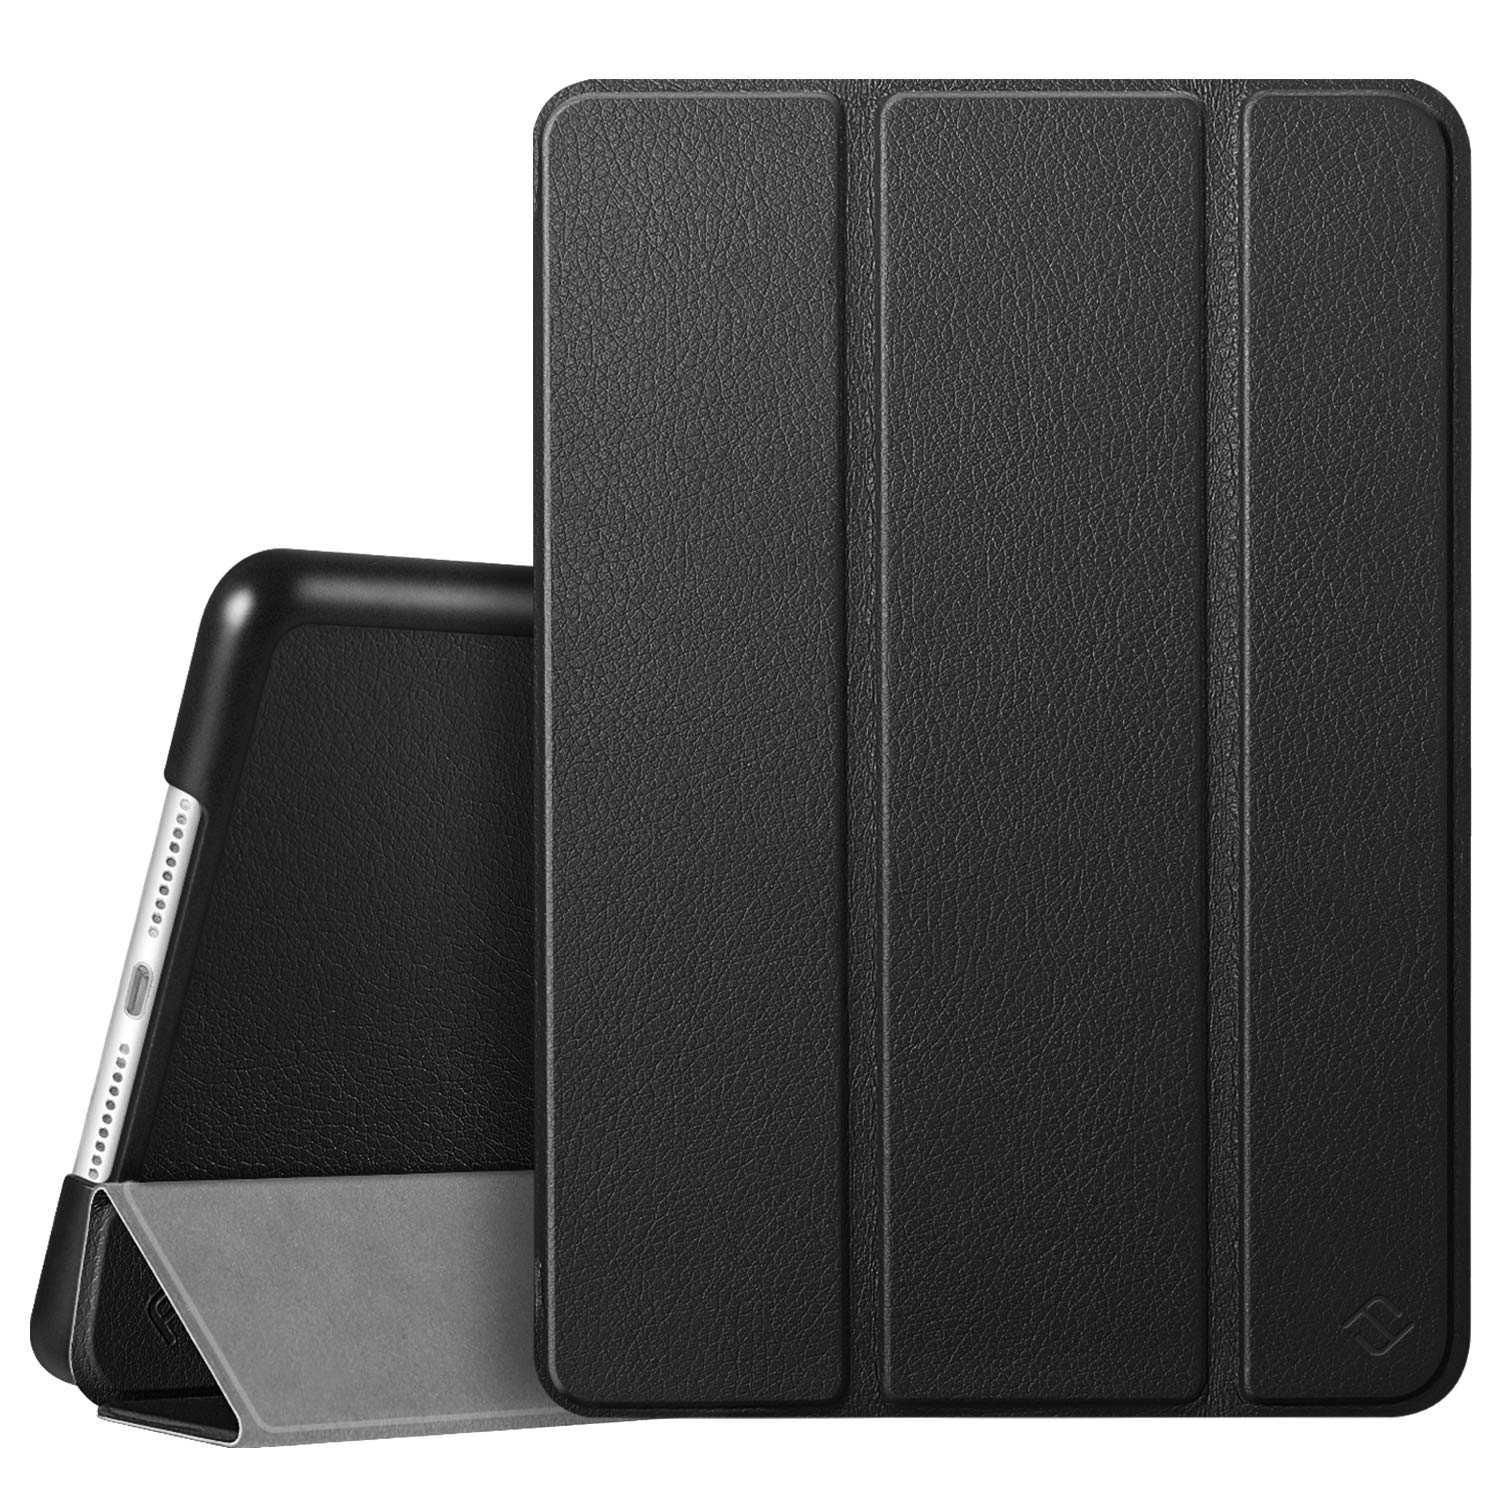 """Fintie Case for iPad 7th Generation 10.2 Inch 2019 - Lightweight Slim Shell Standing Hard Back Cover with Auto Wake/Sleep Feature for iPad 10.2"""" Tablet, Black"""